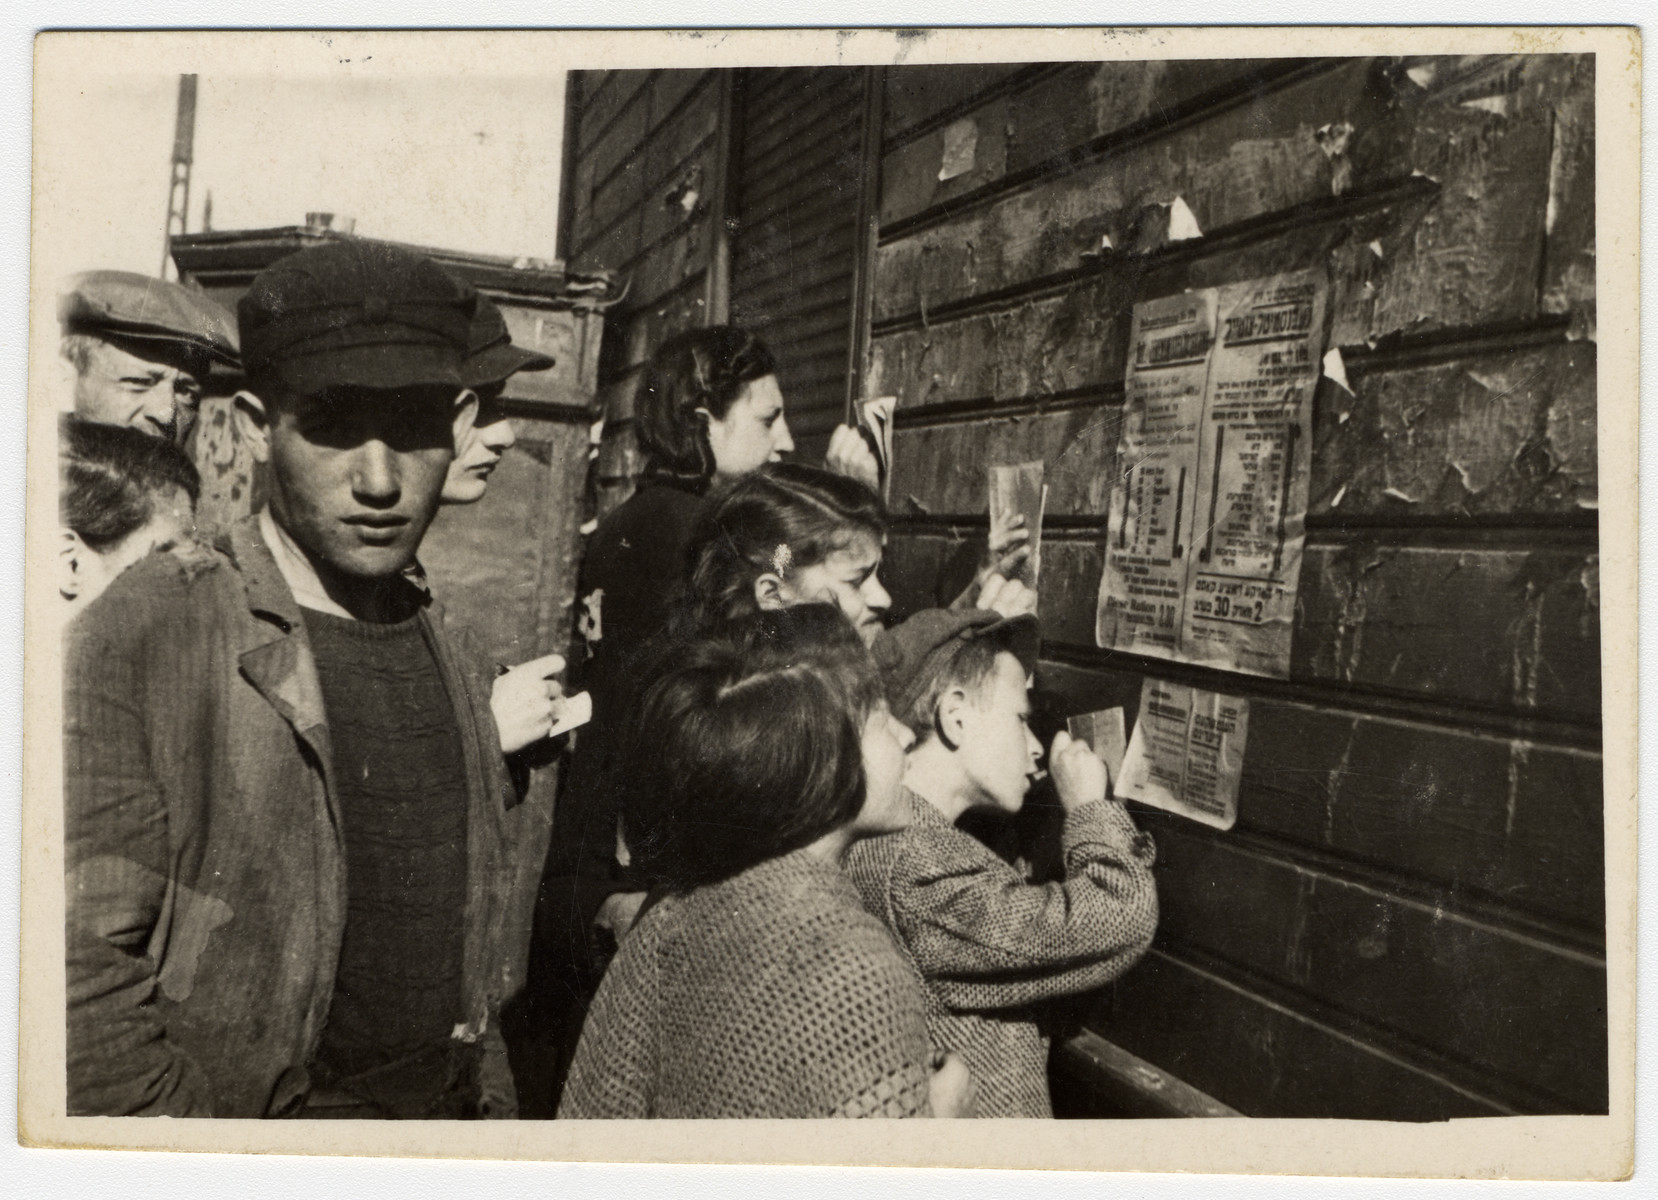 """A crowd reads a ghetto announcement about food rations tacked to a wall and copies down the information.  The original Yiddish caption reads: """"They copy rations from the wall.  They announce good news, but the goods are already long gone."""""""